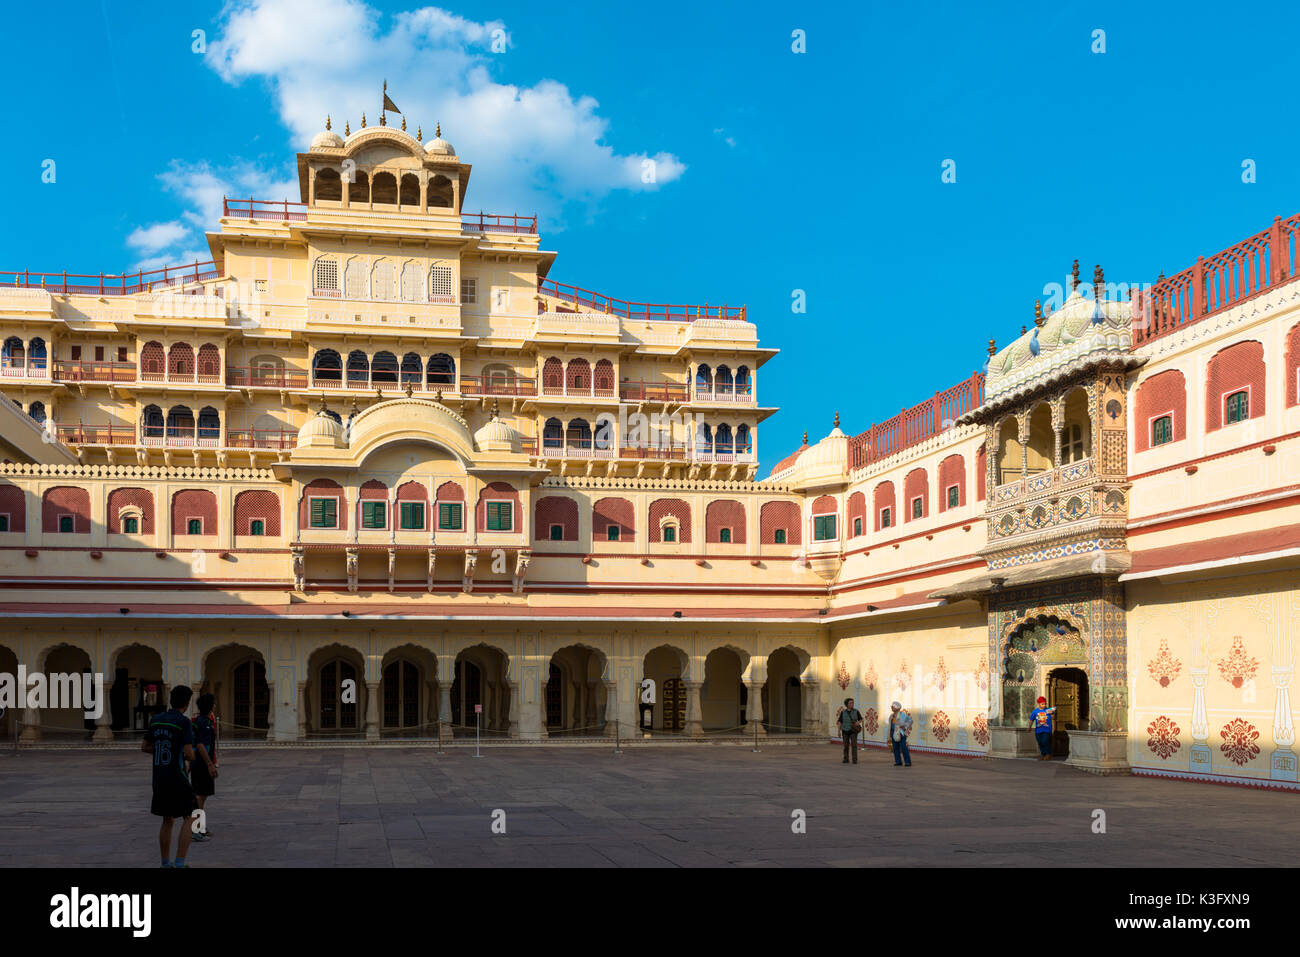 JAIPUR, RAJASTHAN, INDIA - MARCH 10, 2016: Front picture of Chandra Mahal inside of City Palace in Jaipur, known as pink city of Rajasthan in India. - Stock Image